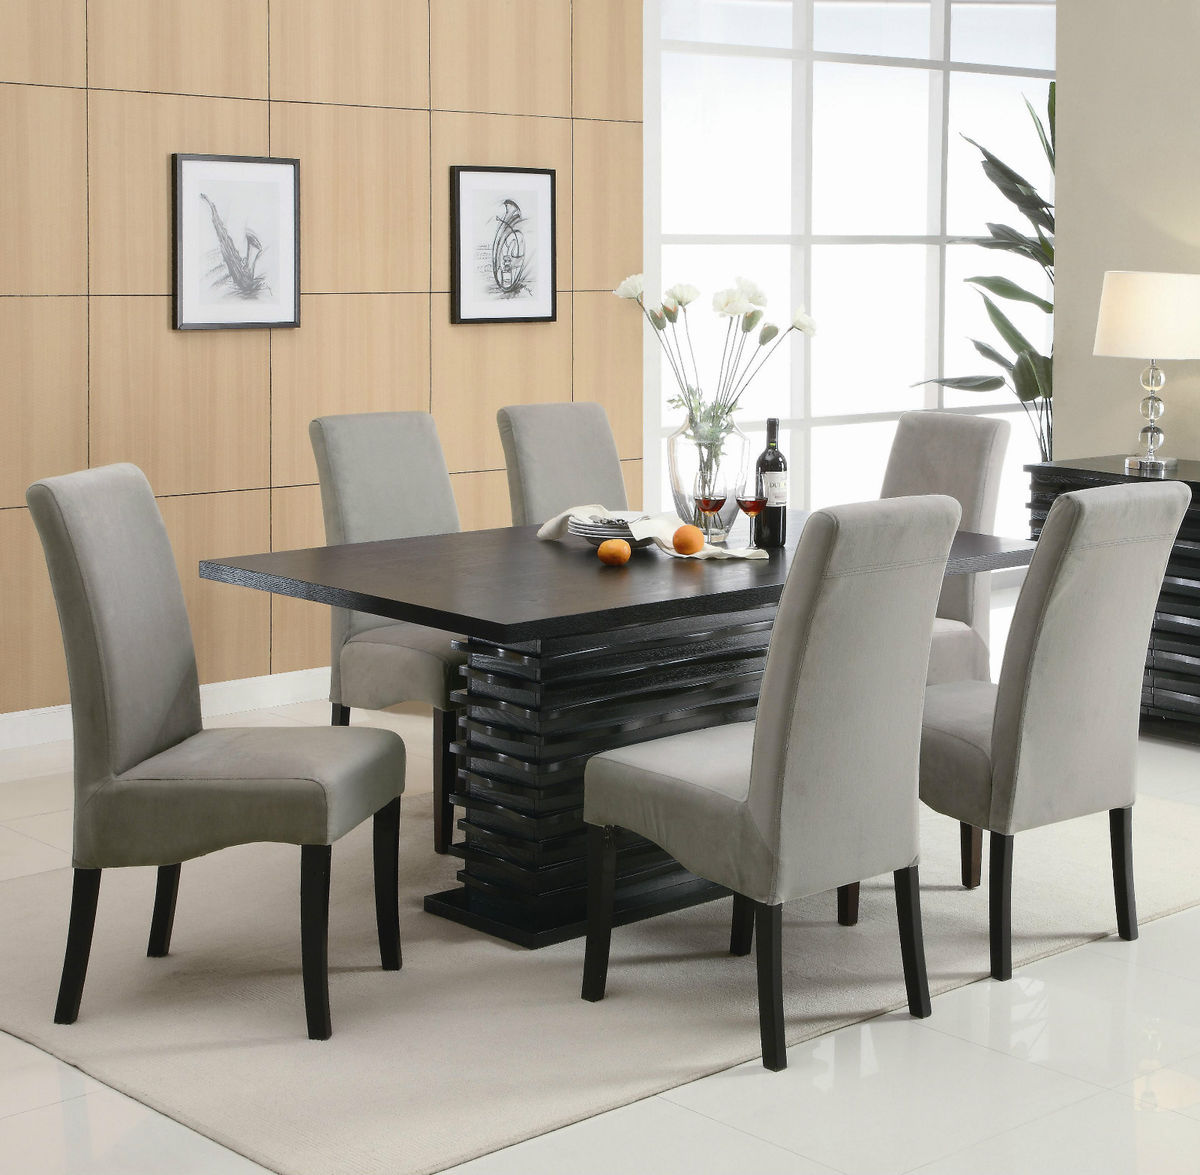 modern furniture dining room. Best Pretty Dining Table With Chairs On Contemporary Black Modern Room Furniture